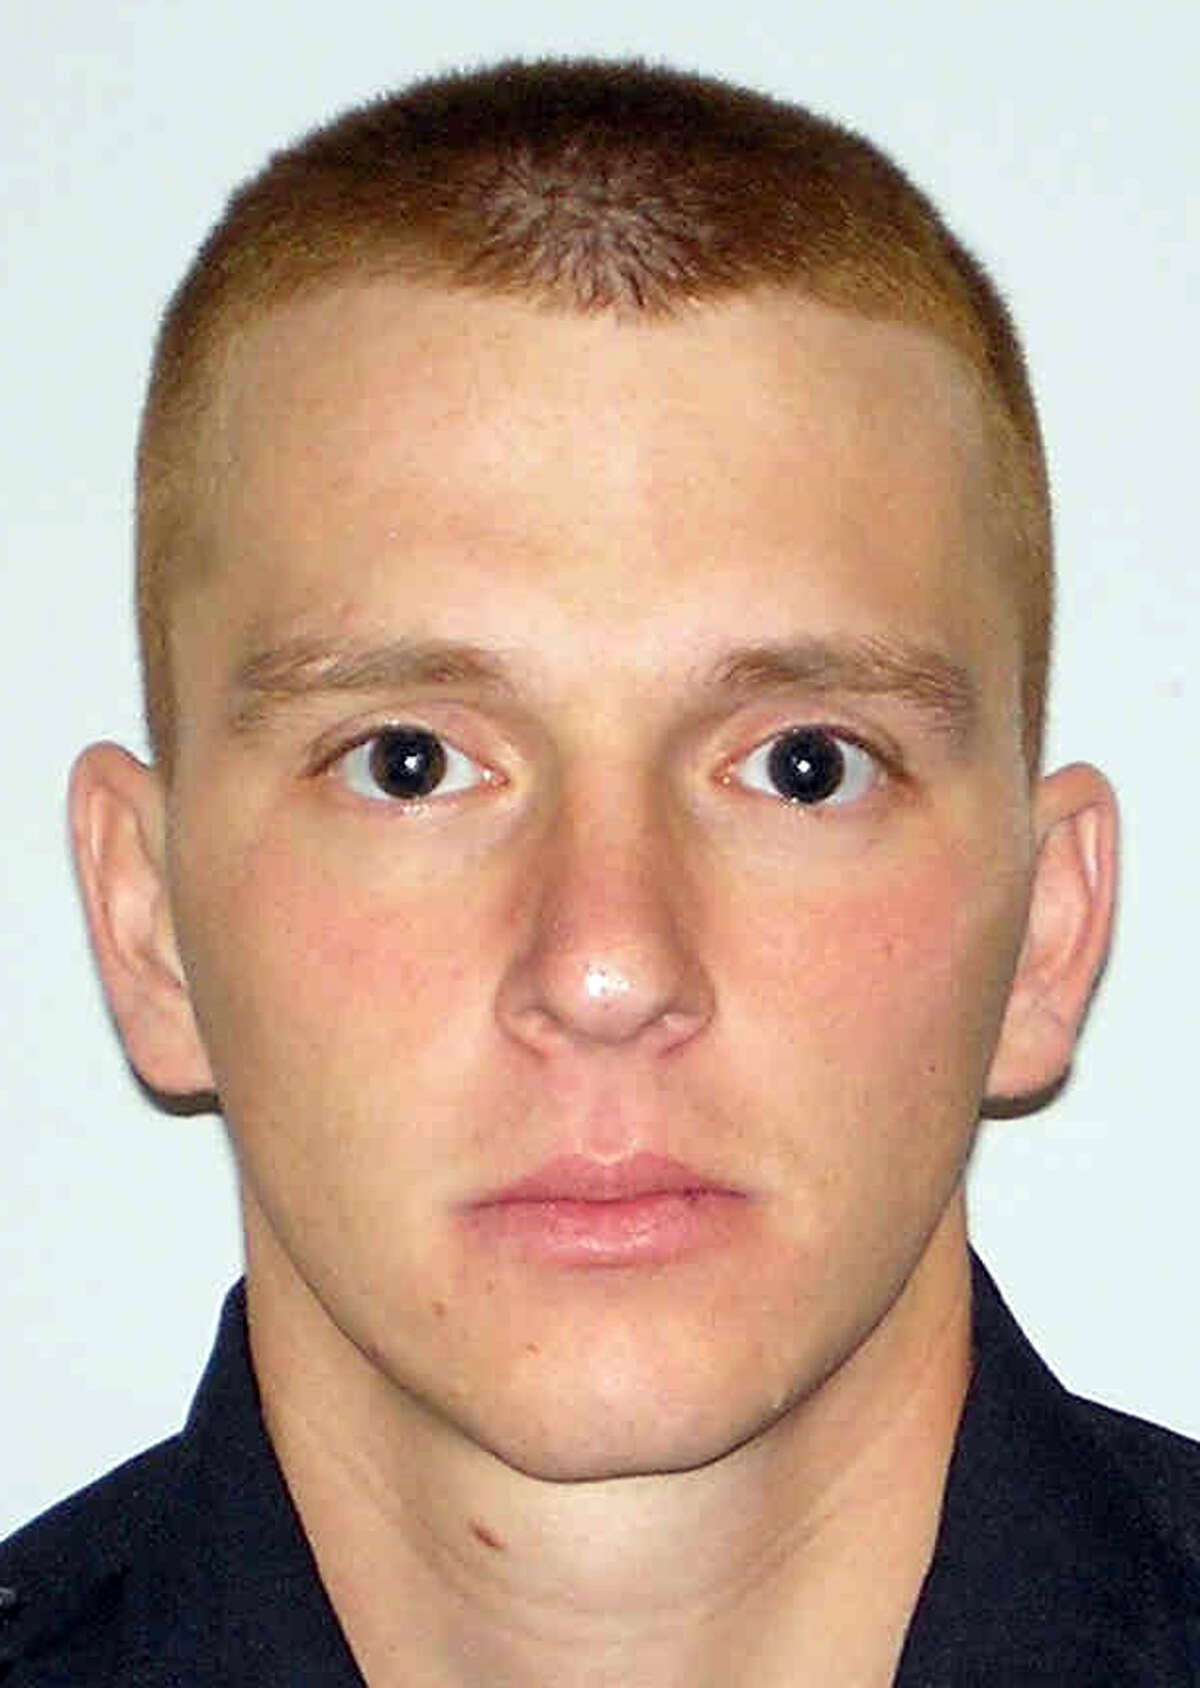 San Antonio Police Officer Robert Davis who was killed after being hit by another SAPD vehicle.